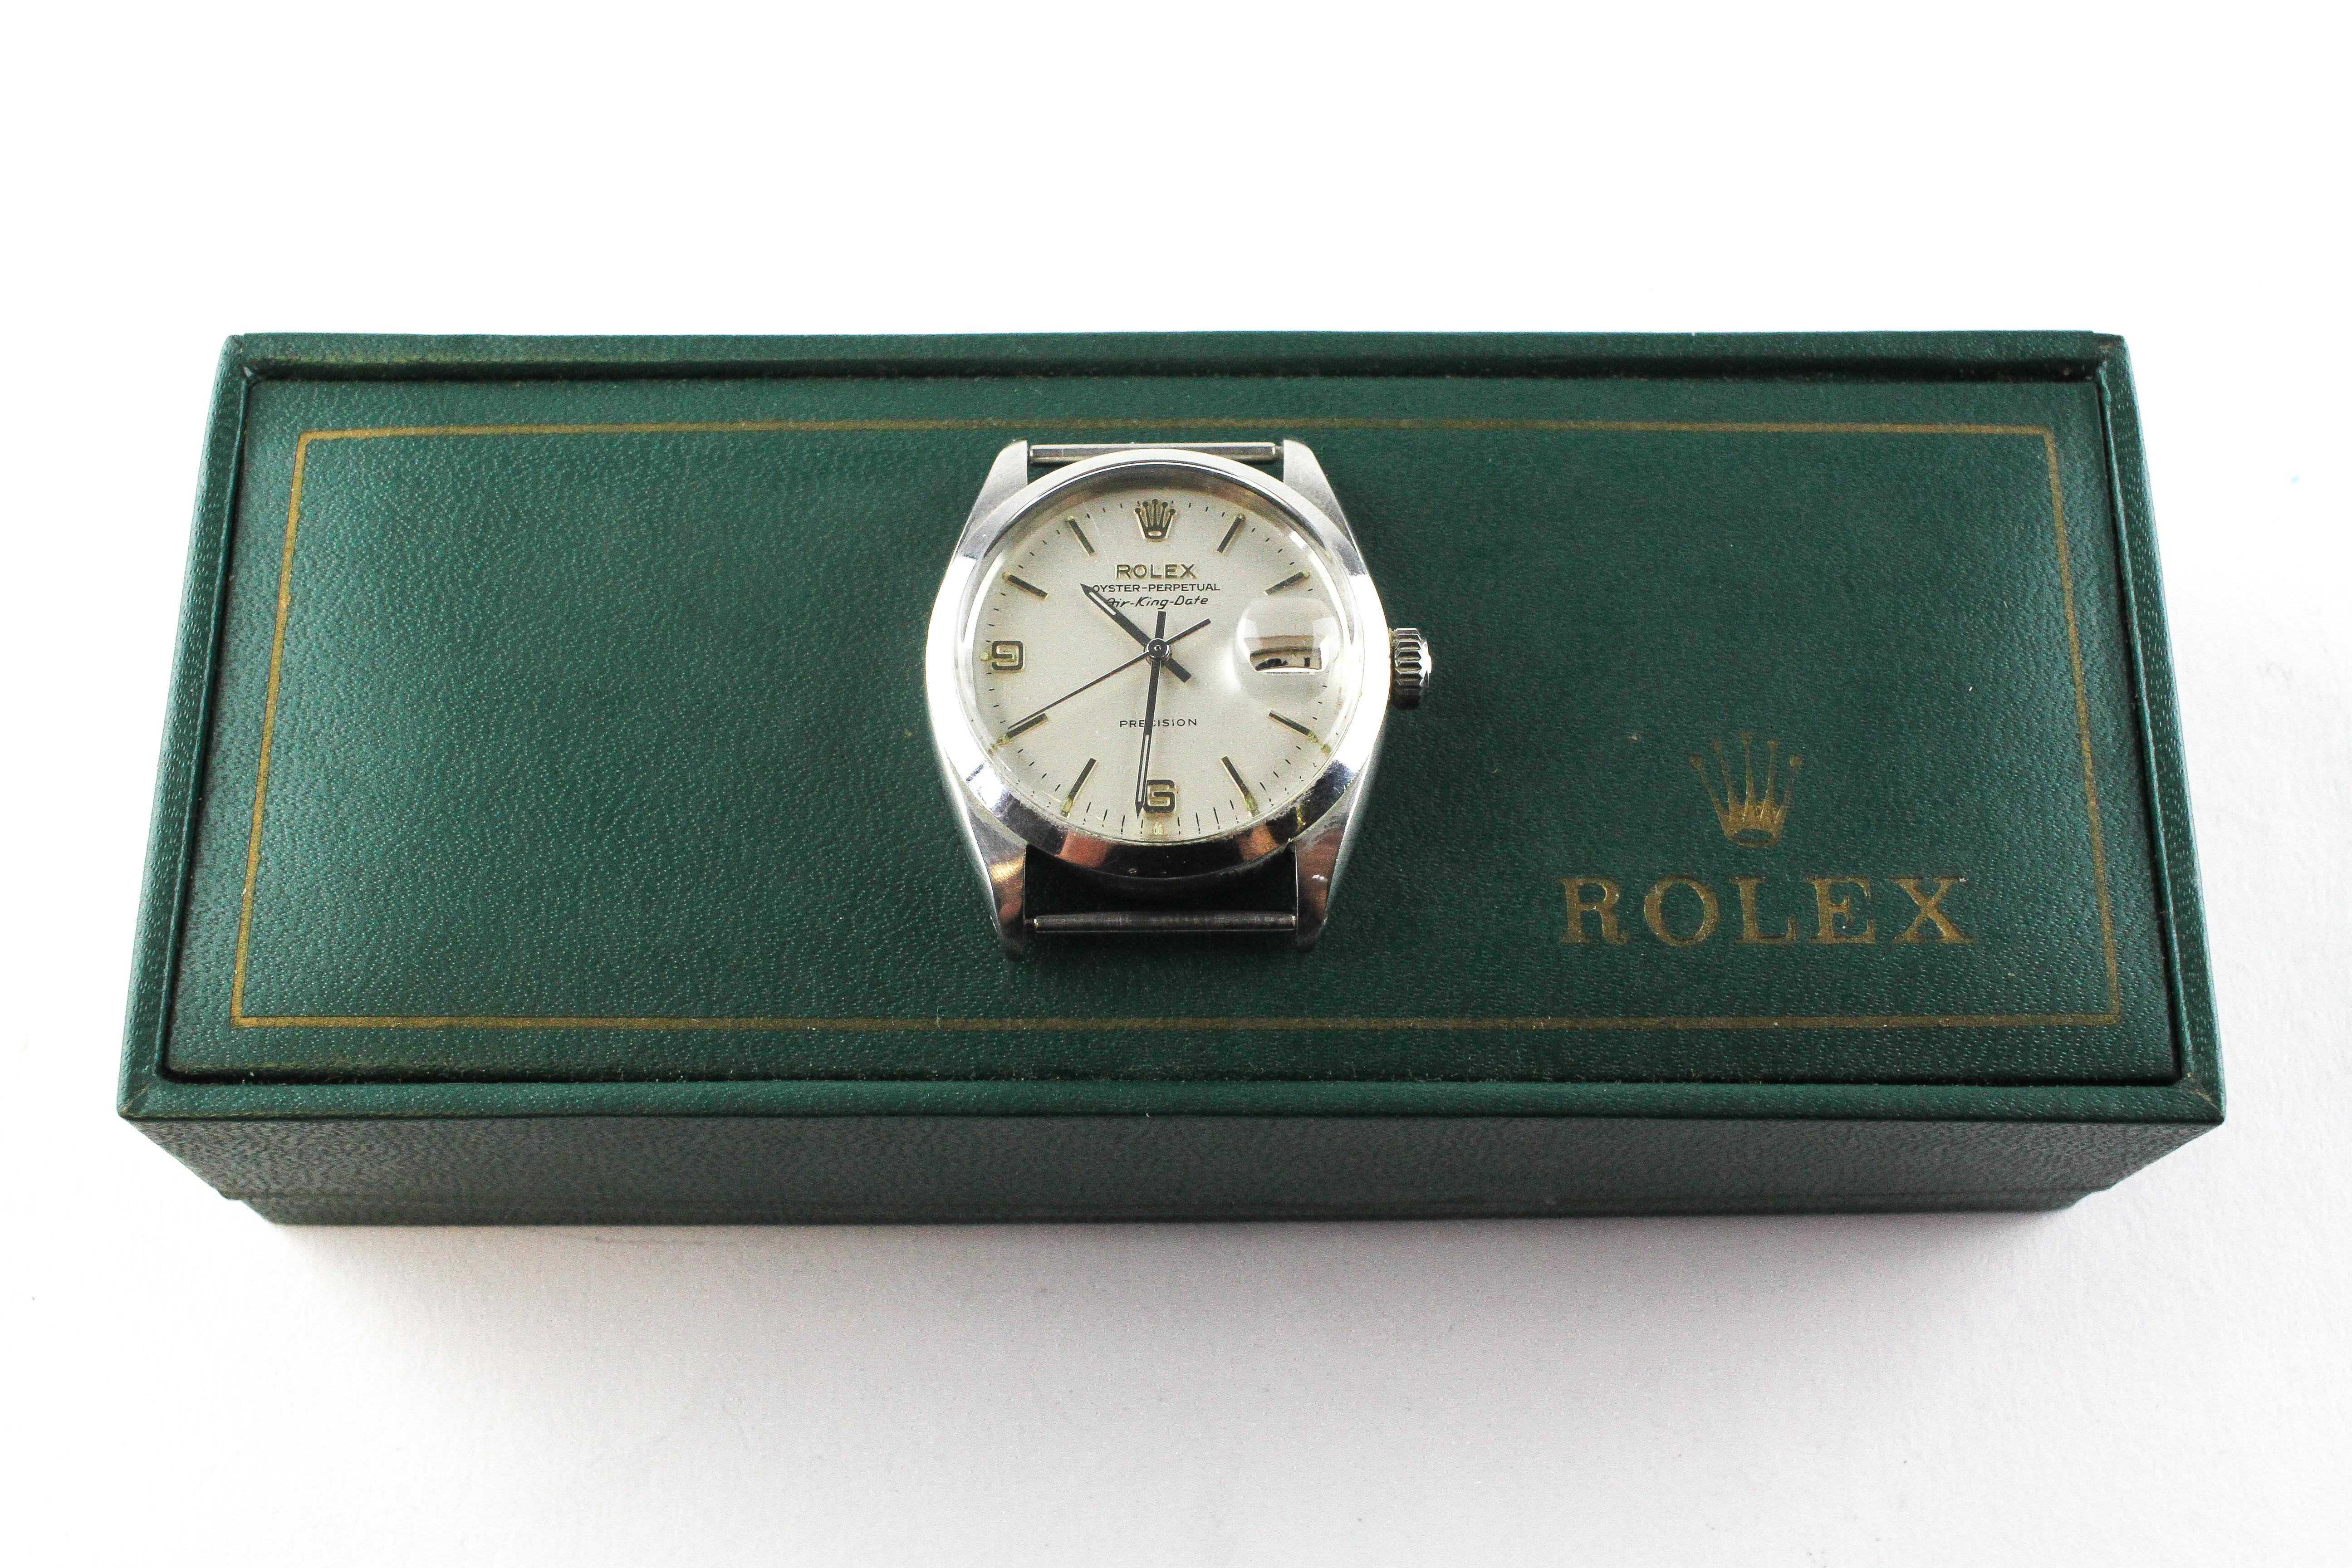 A stainless steel rolex oyster perpetual air king date wristwatch. - Image 3 of 11